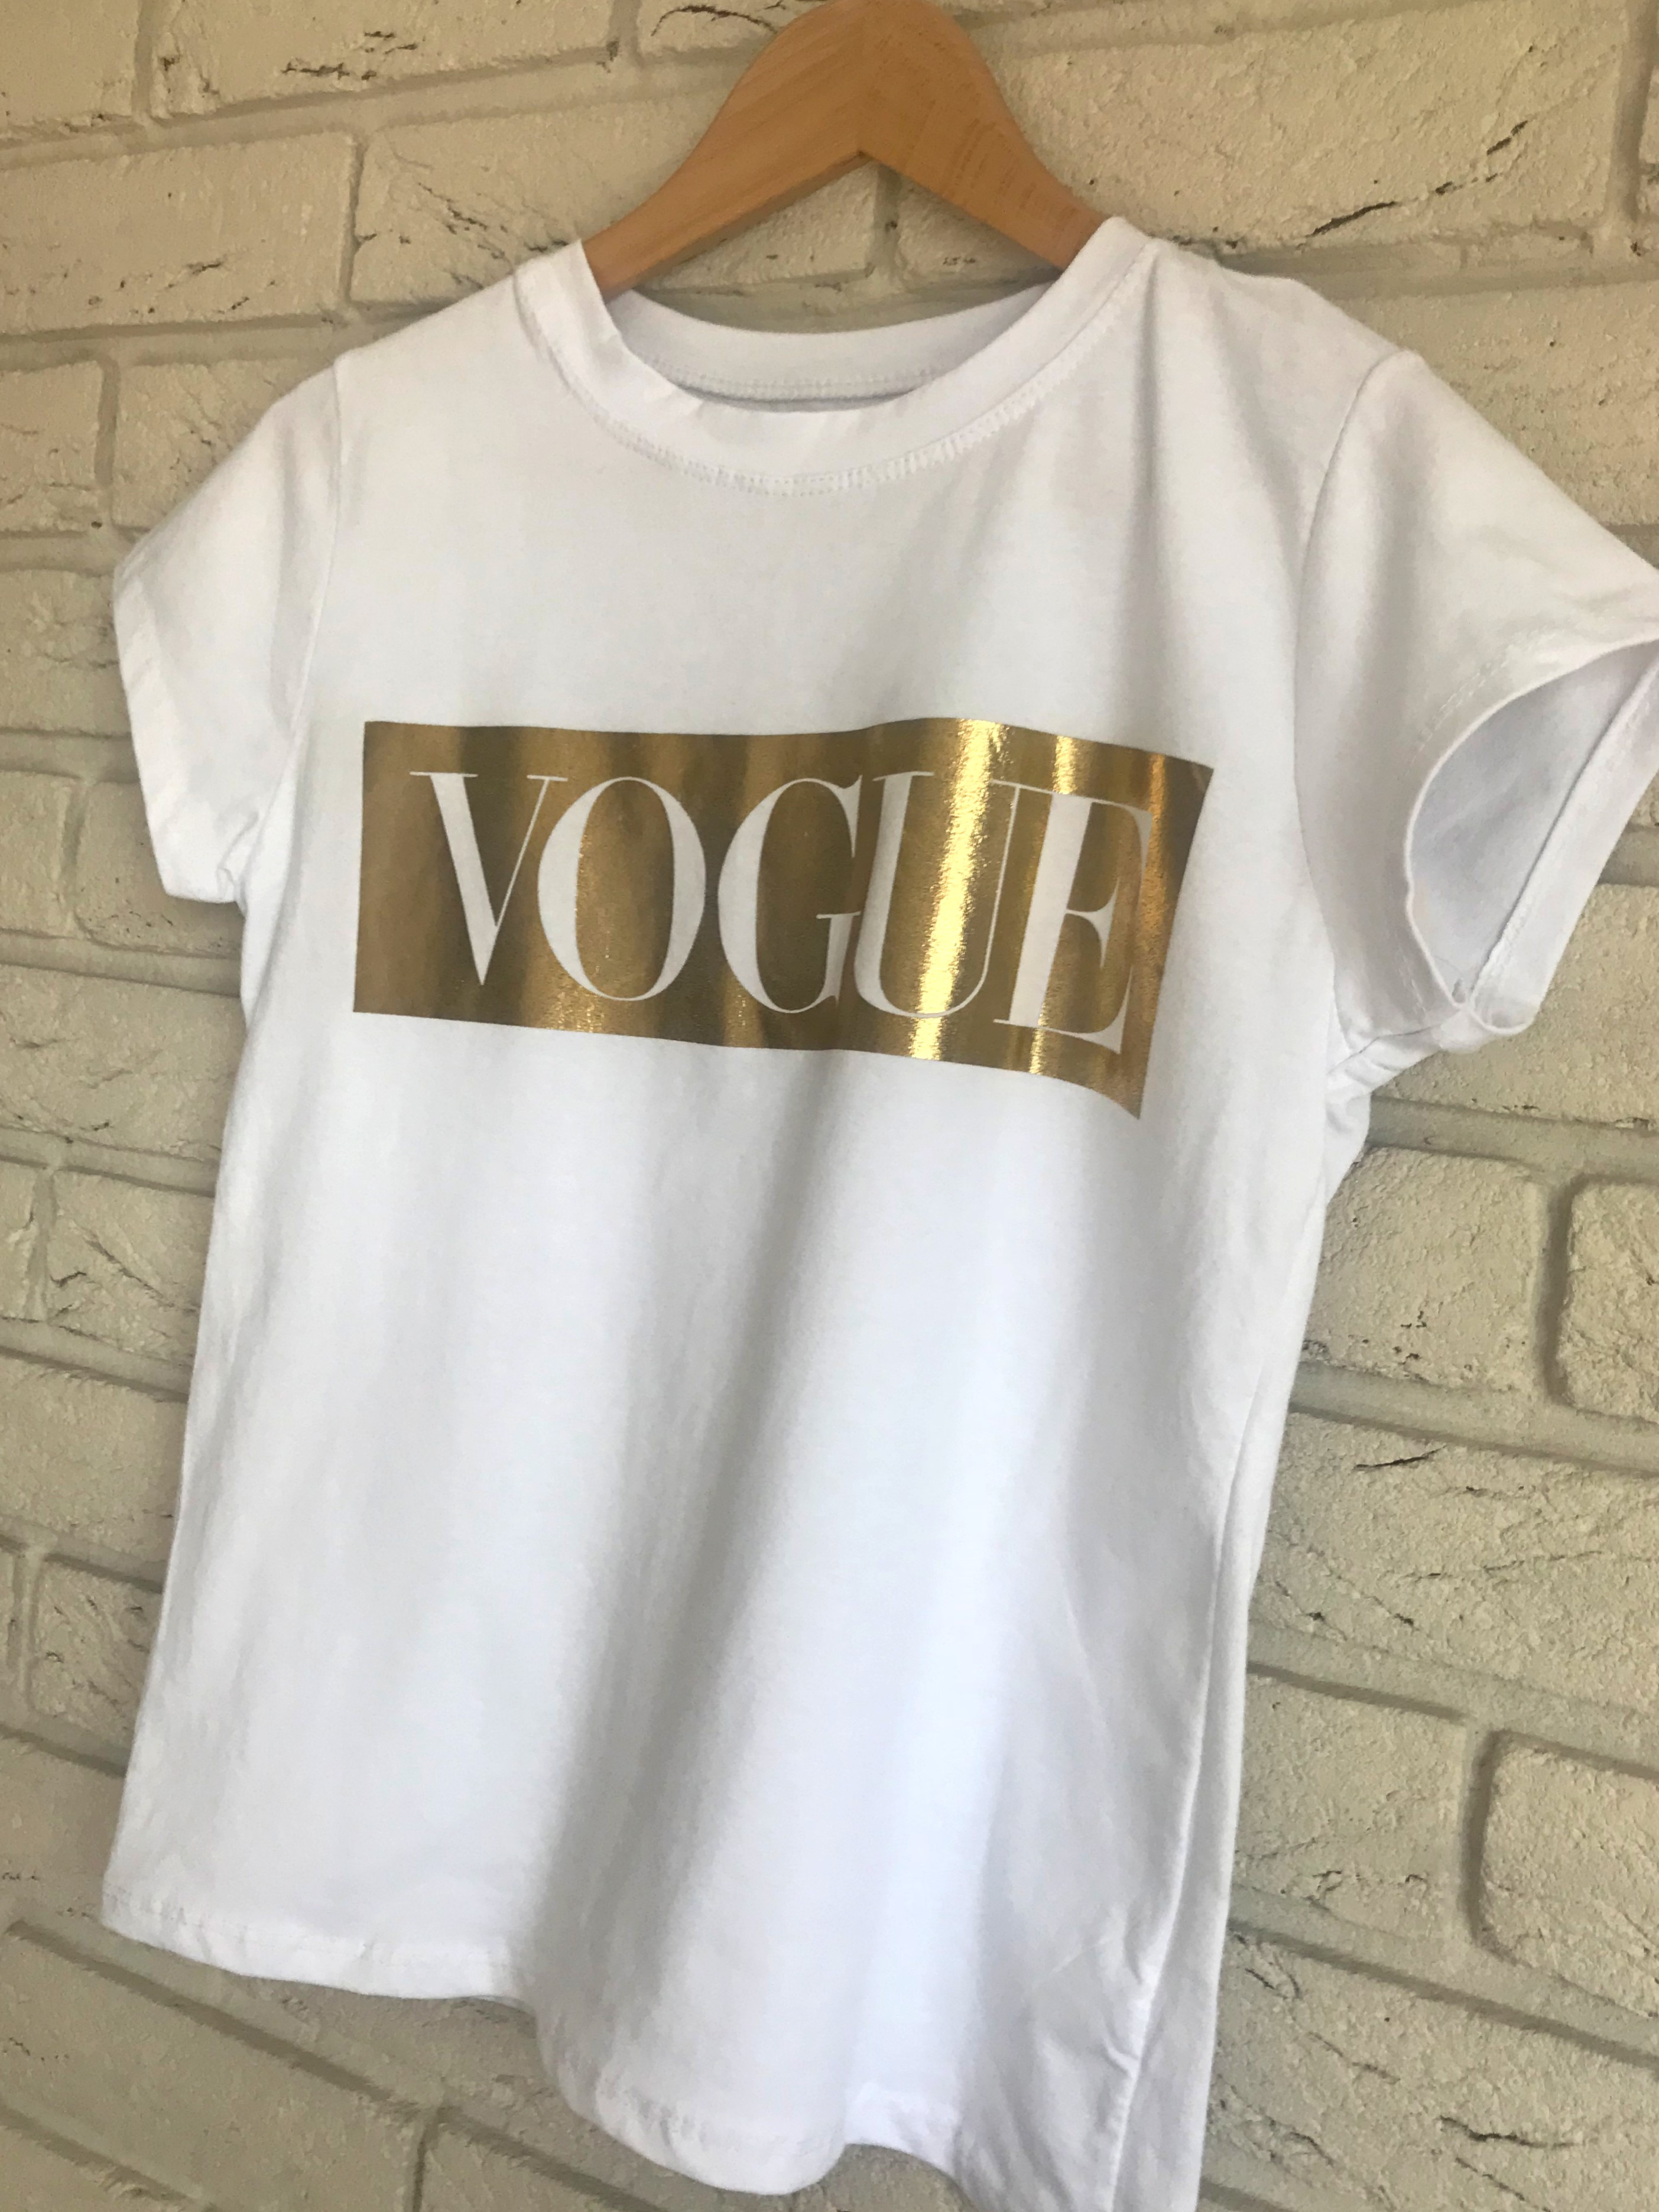 vogue t shirt labels and love. Black Bedroom Furniture Sets. Home Design Ideas